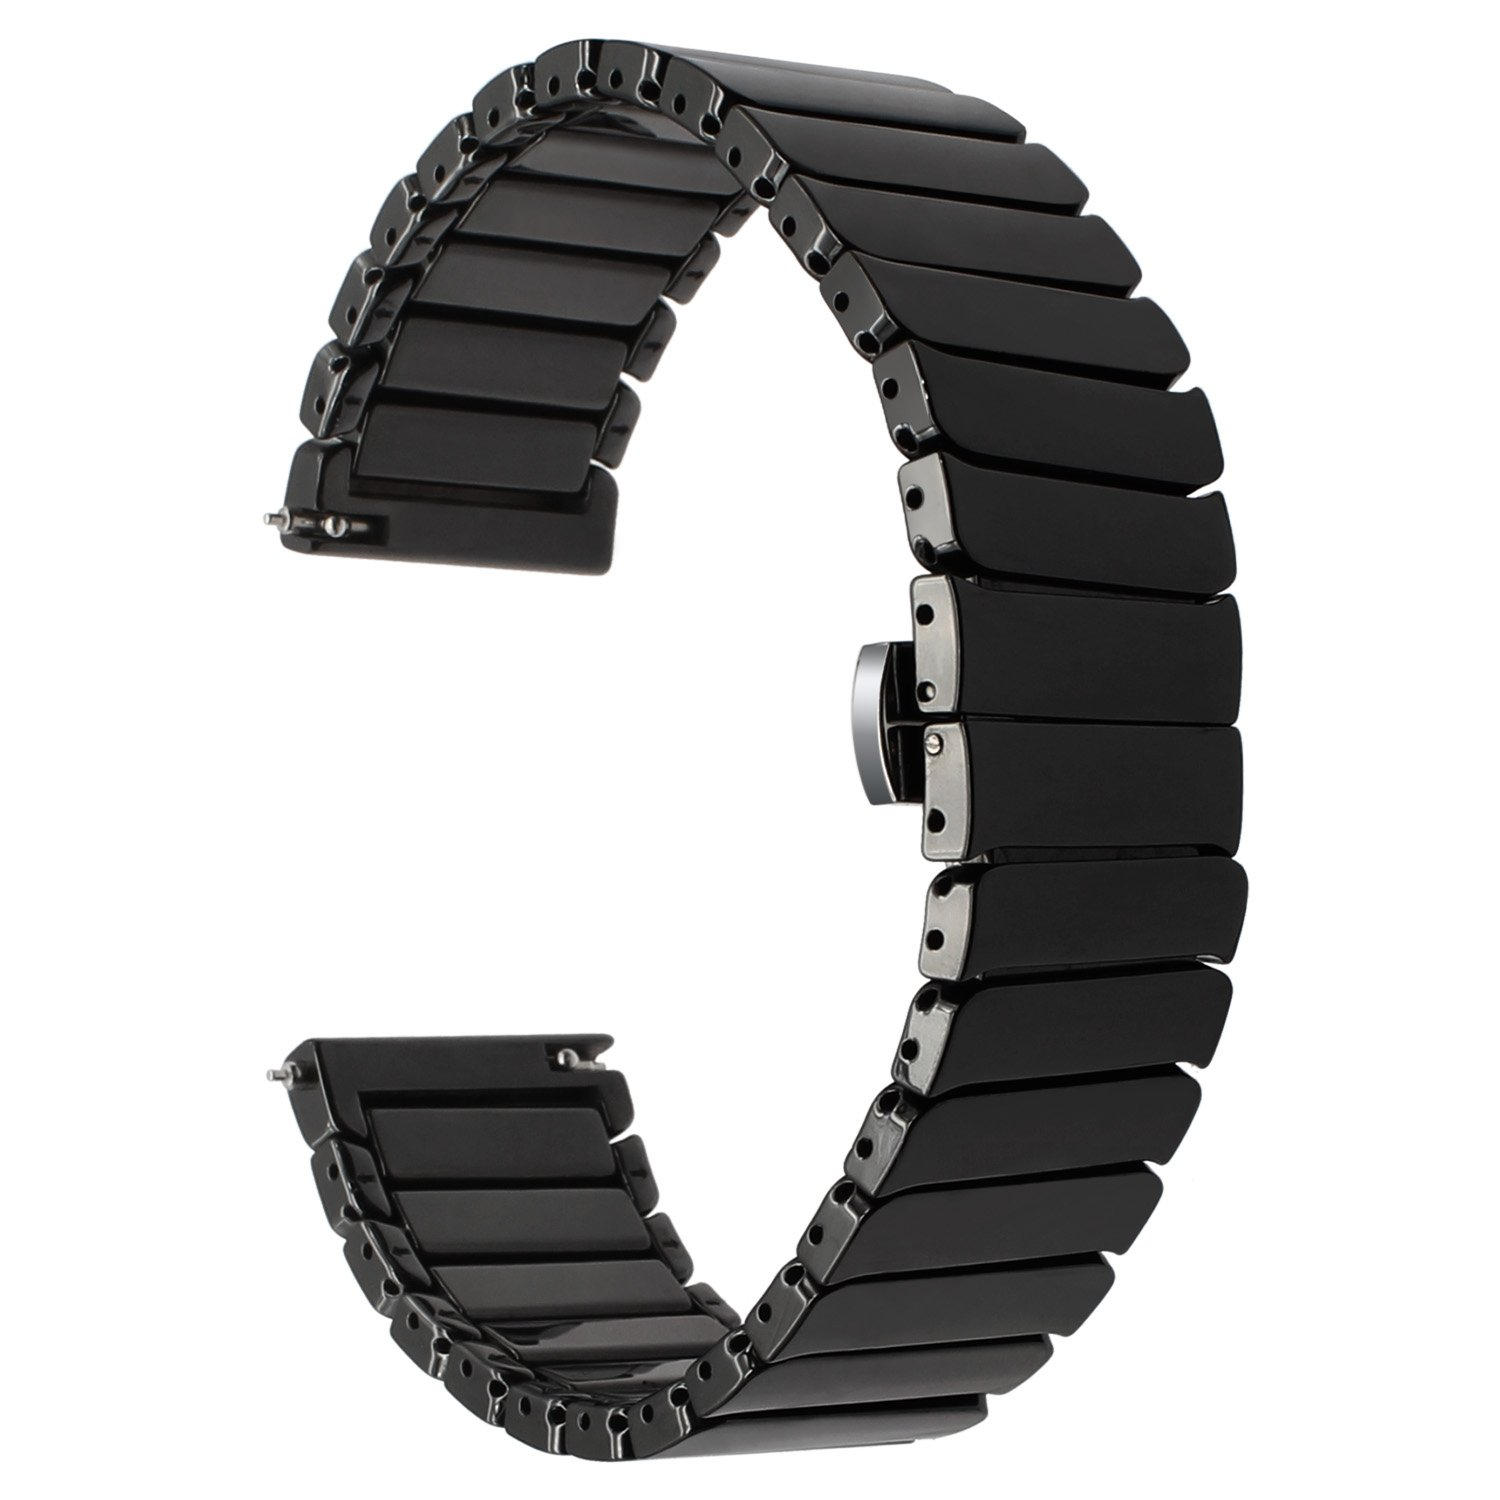 for Samsung Gear S3 Frontier Classic/Galaxy Watch 46mm Watch Band, TRUMiRR 22mm Ceramic Band Quick Release Strap Replacement for Samsung Gear 2 Neo ...